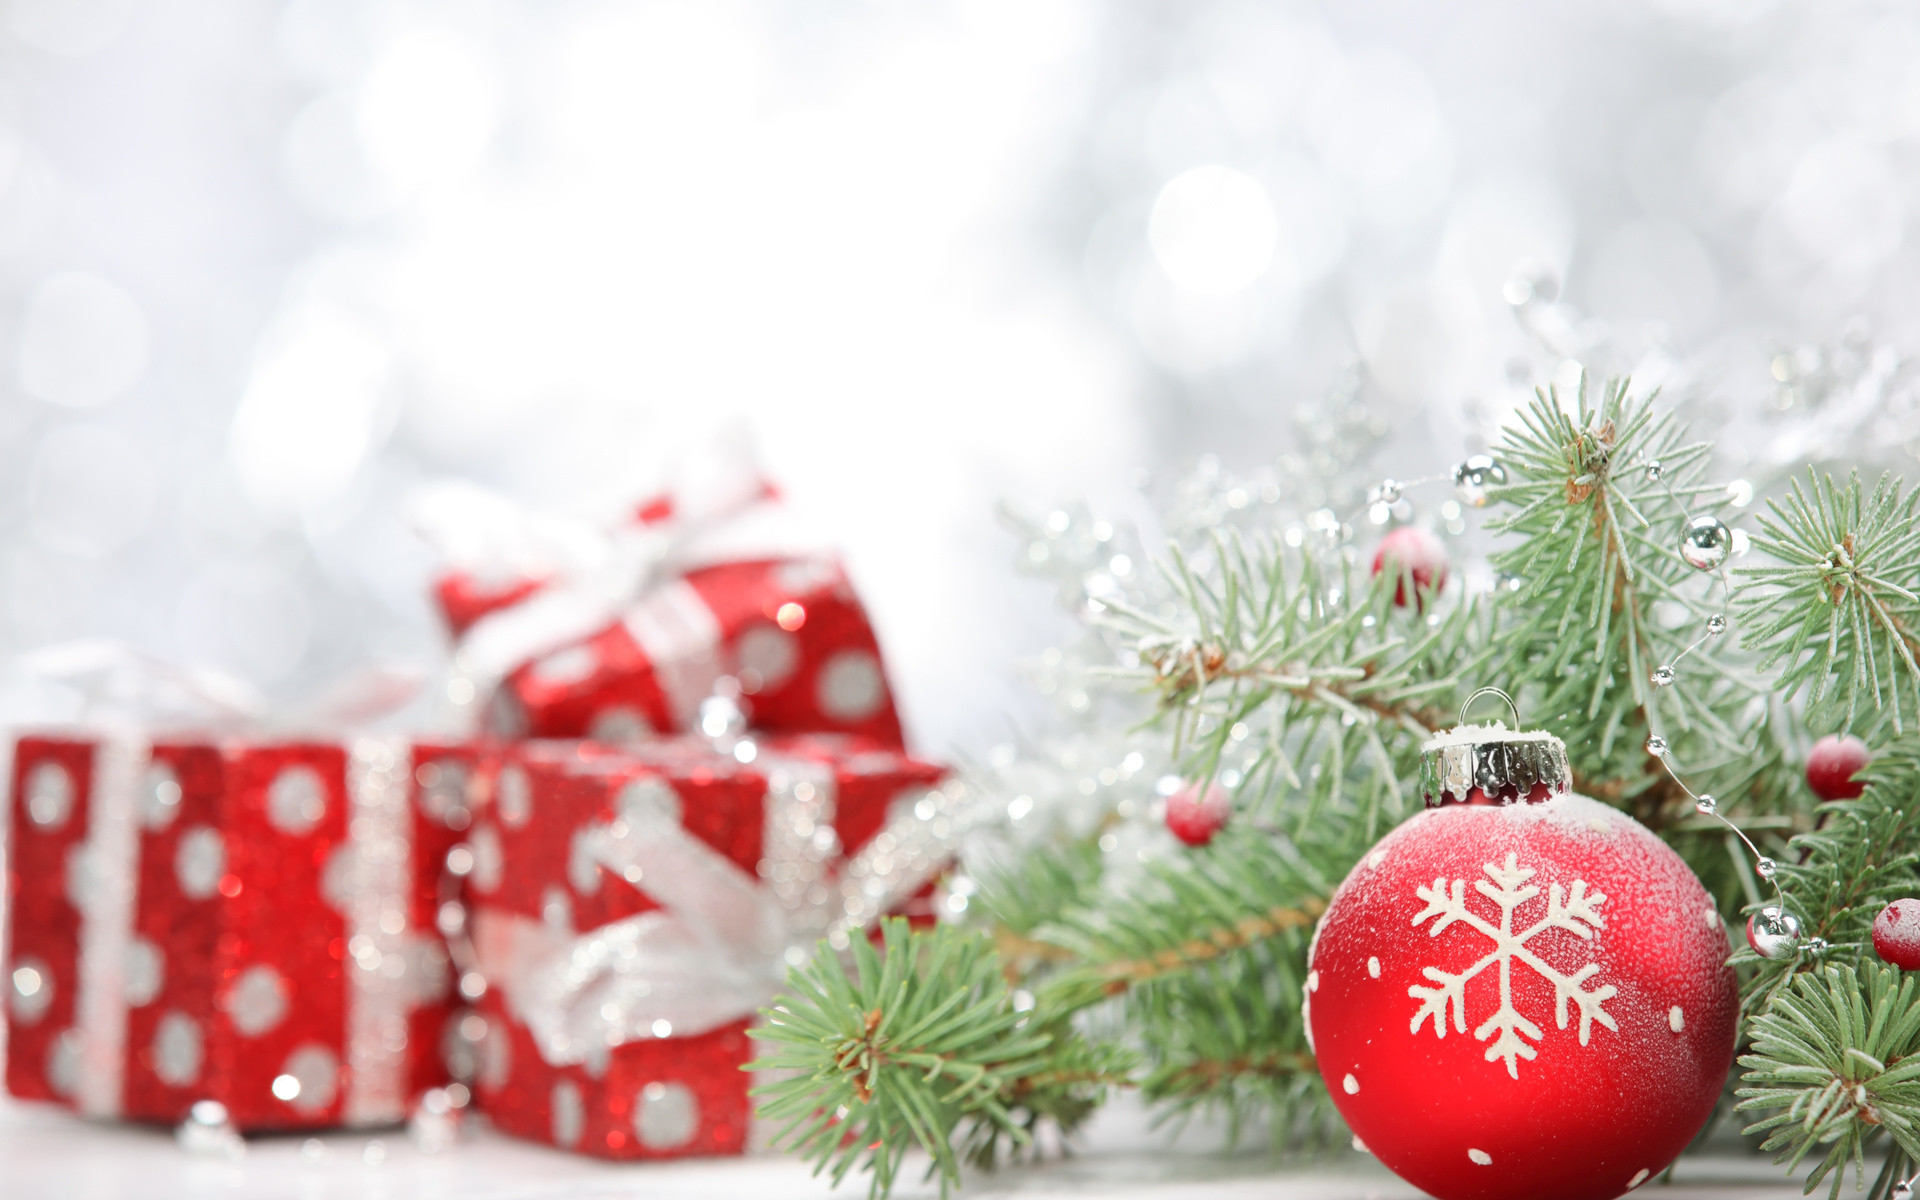 Holiday Computer Backgrounds 57 images 1920x1200